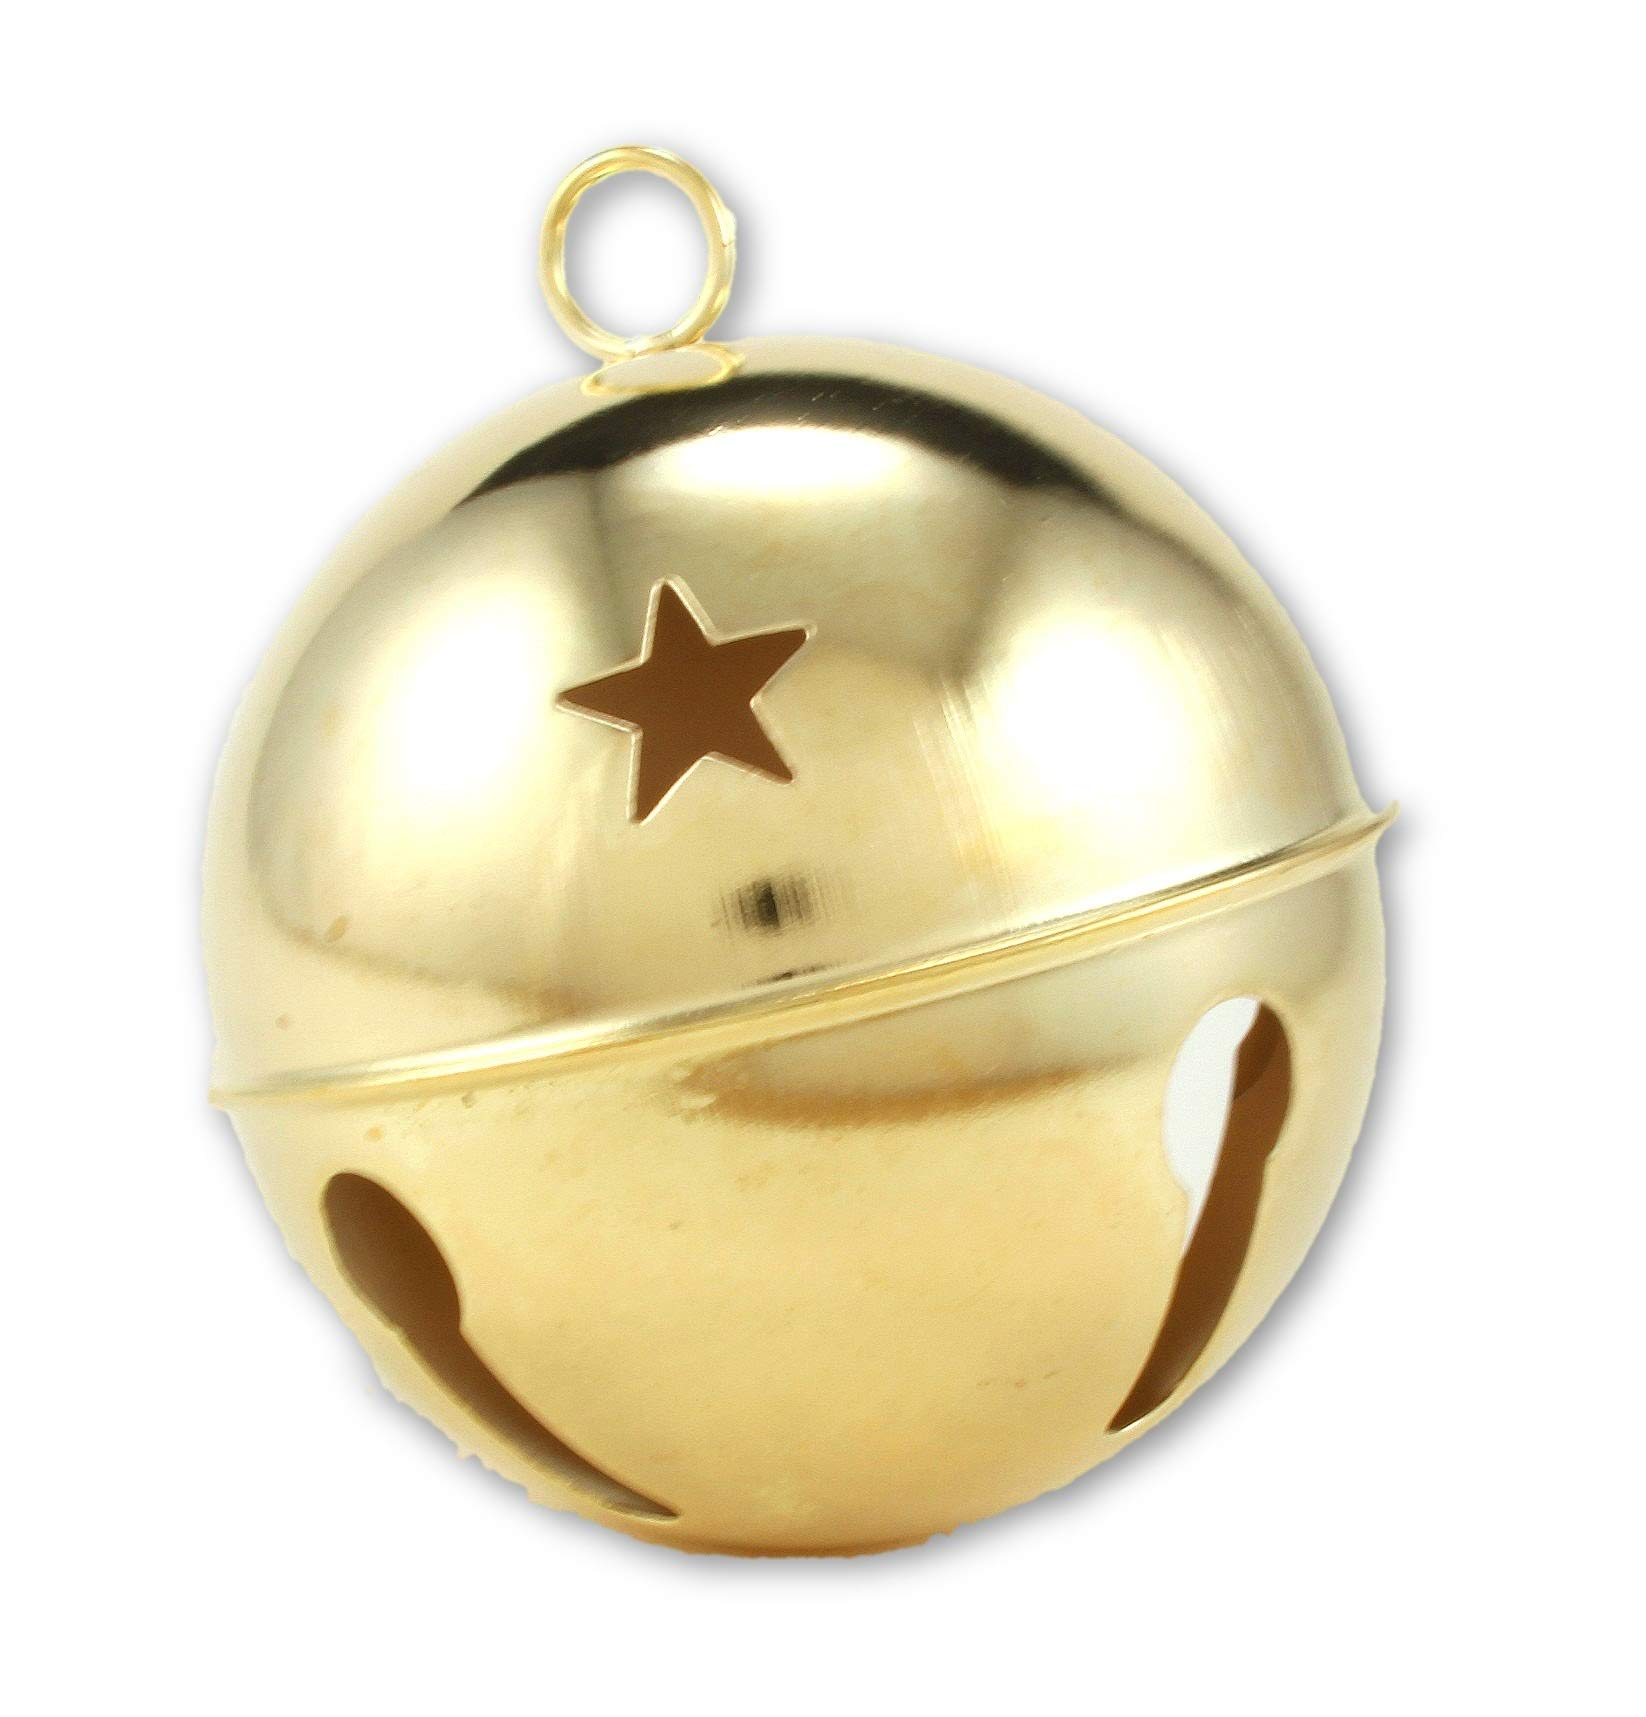 3.15 Inch 80mm Giant Jumbo Large Gold Jingle Bell with Stars Bulk 12 Pieces